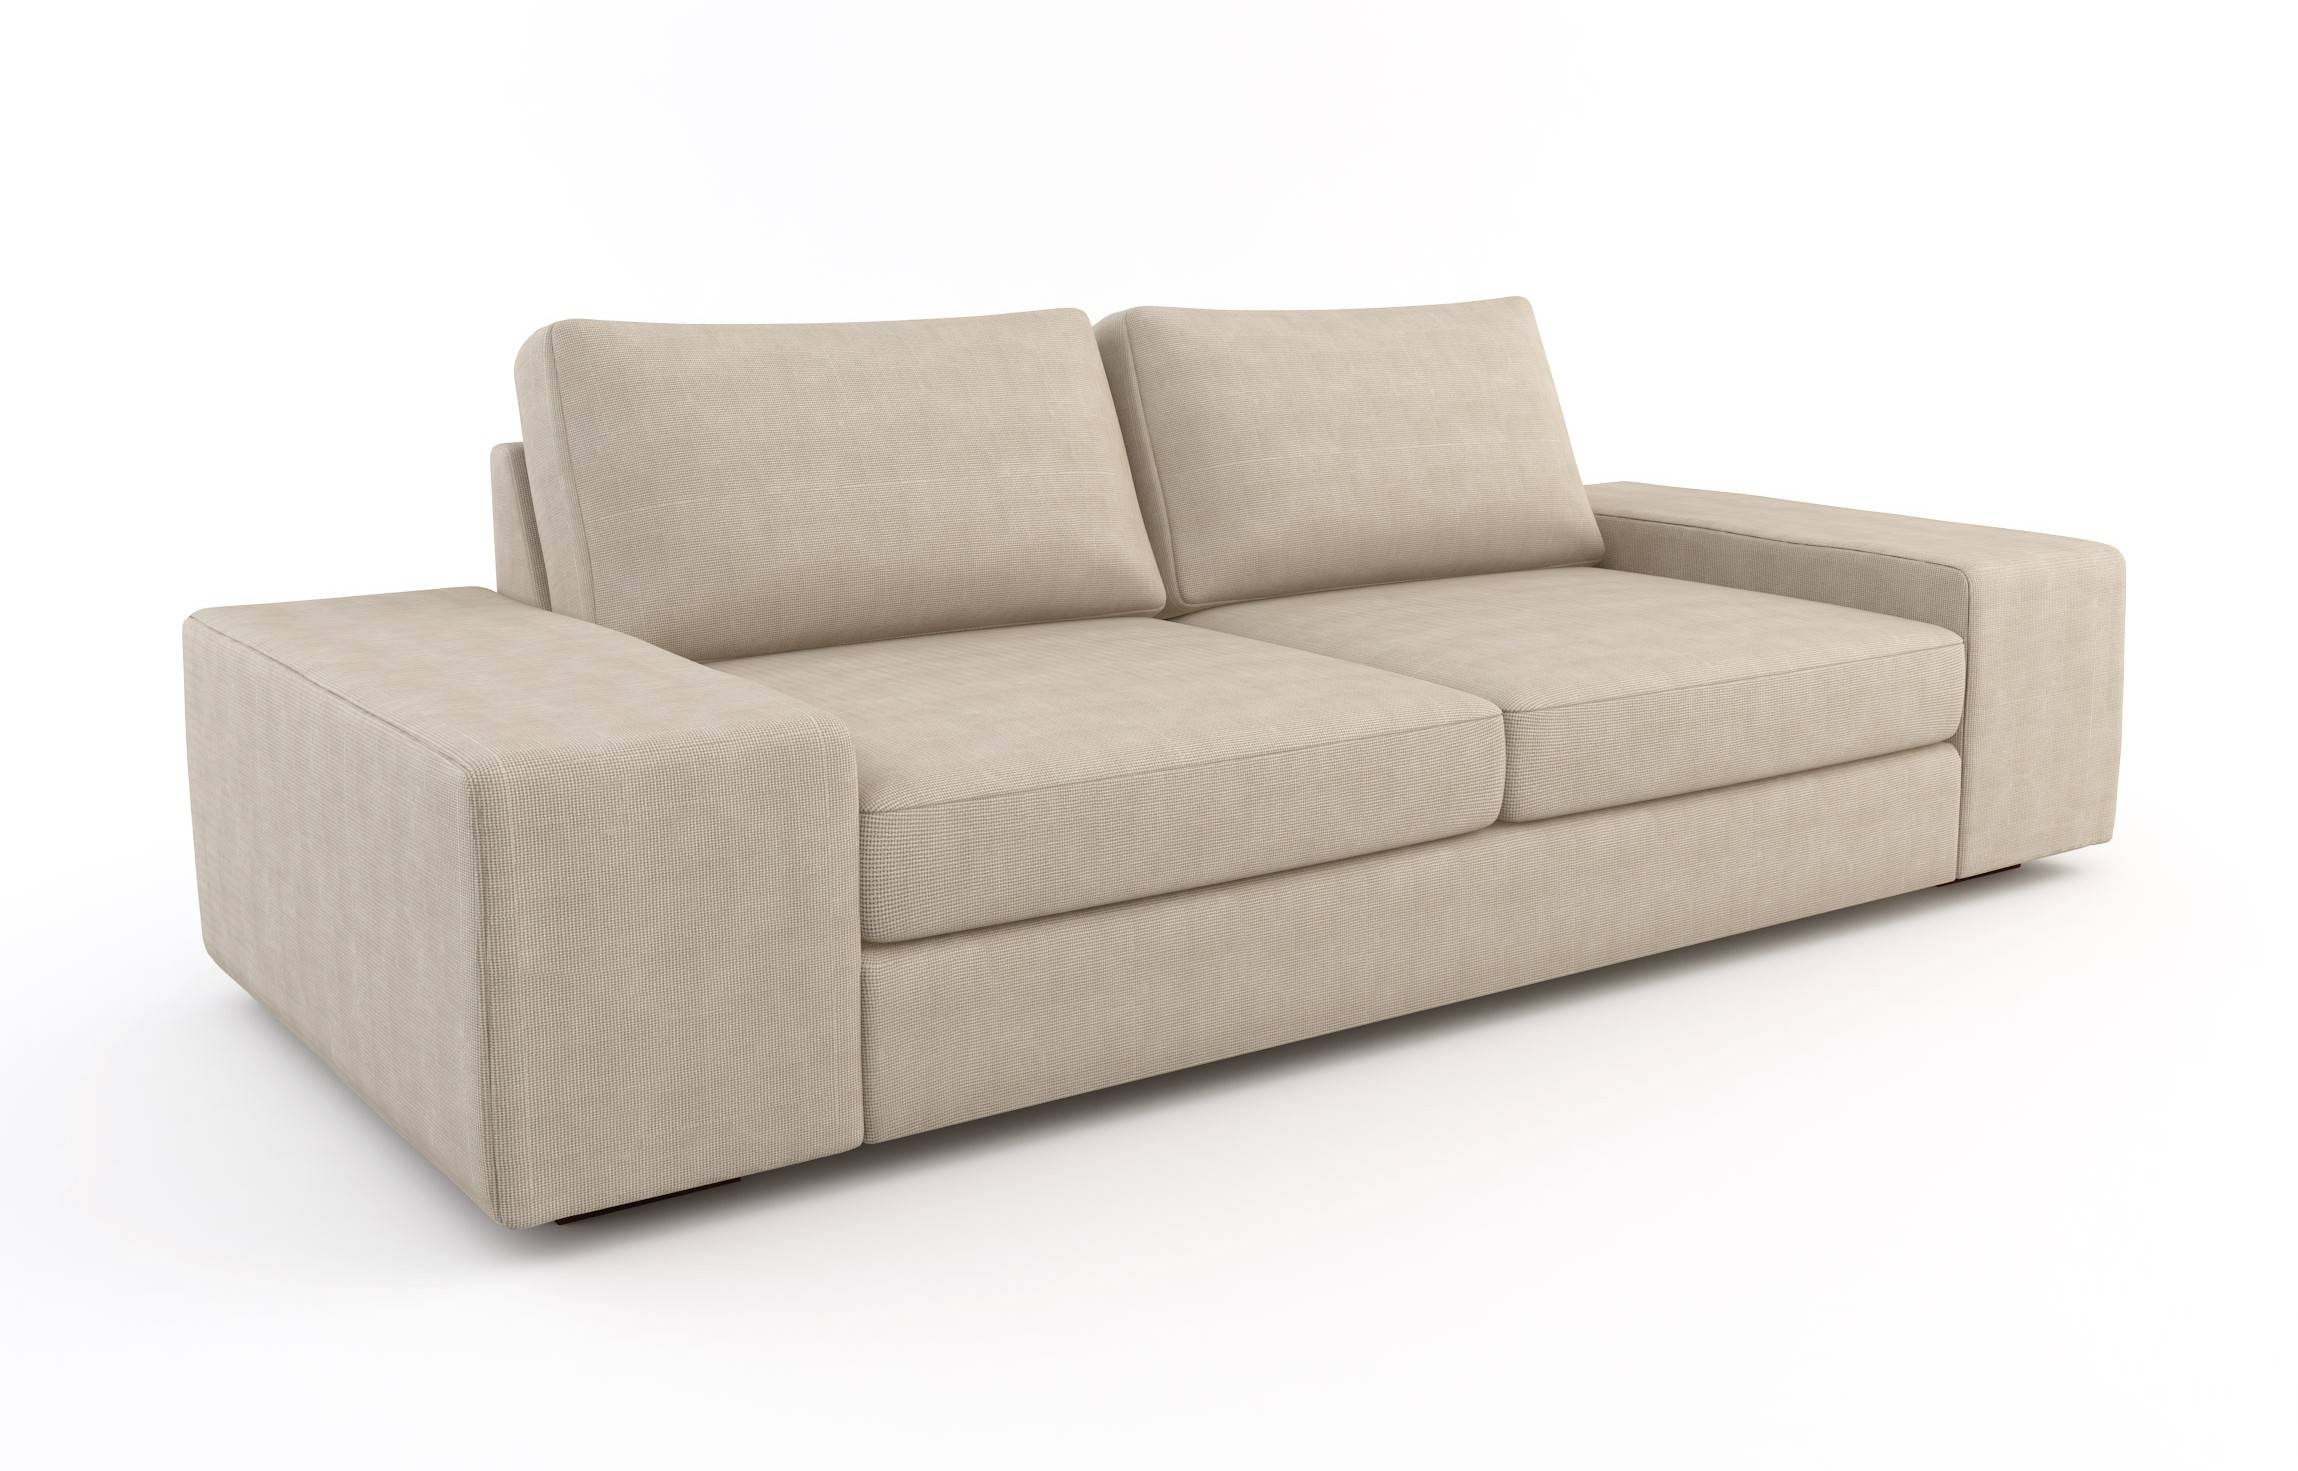 Strata Sofa Bed | Viesso Regarding Cushion Sofa Beds (View 28 of 30)